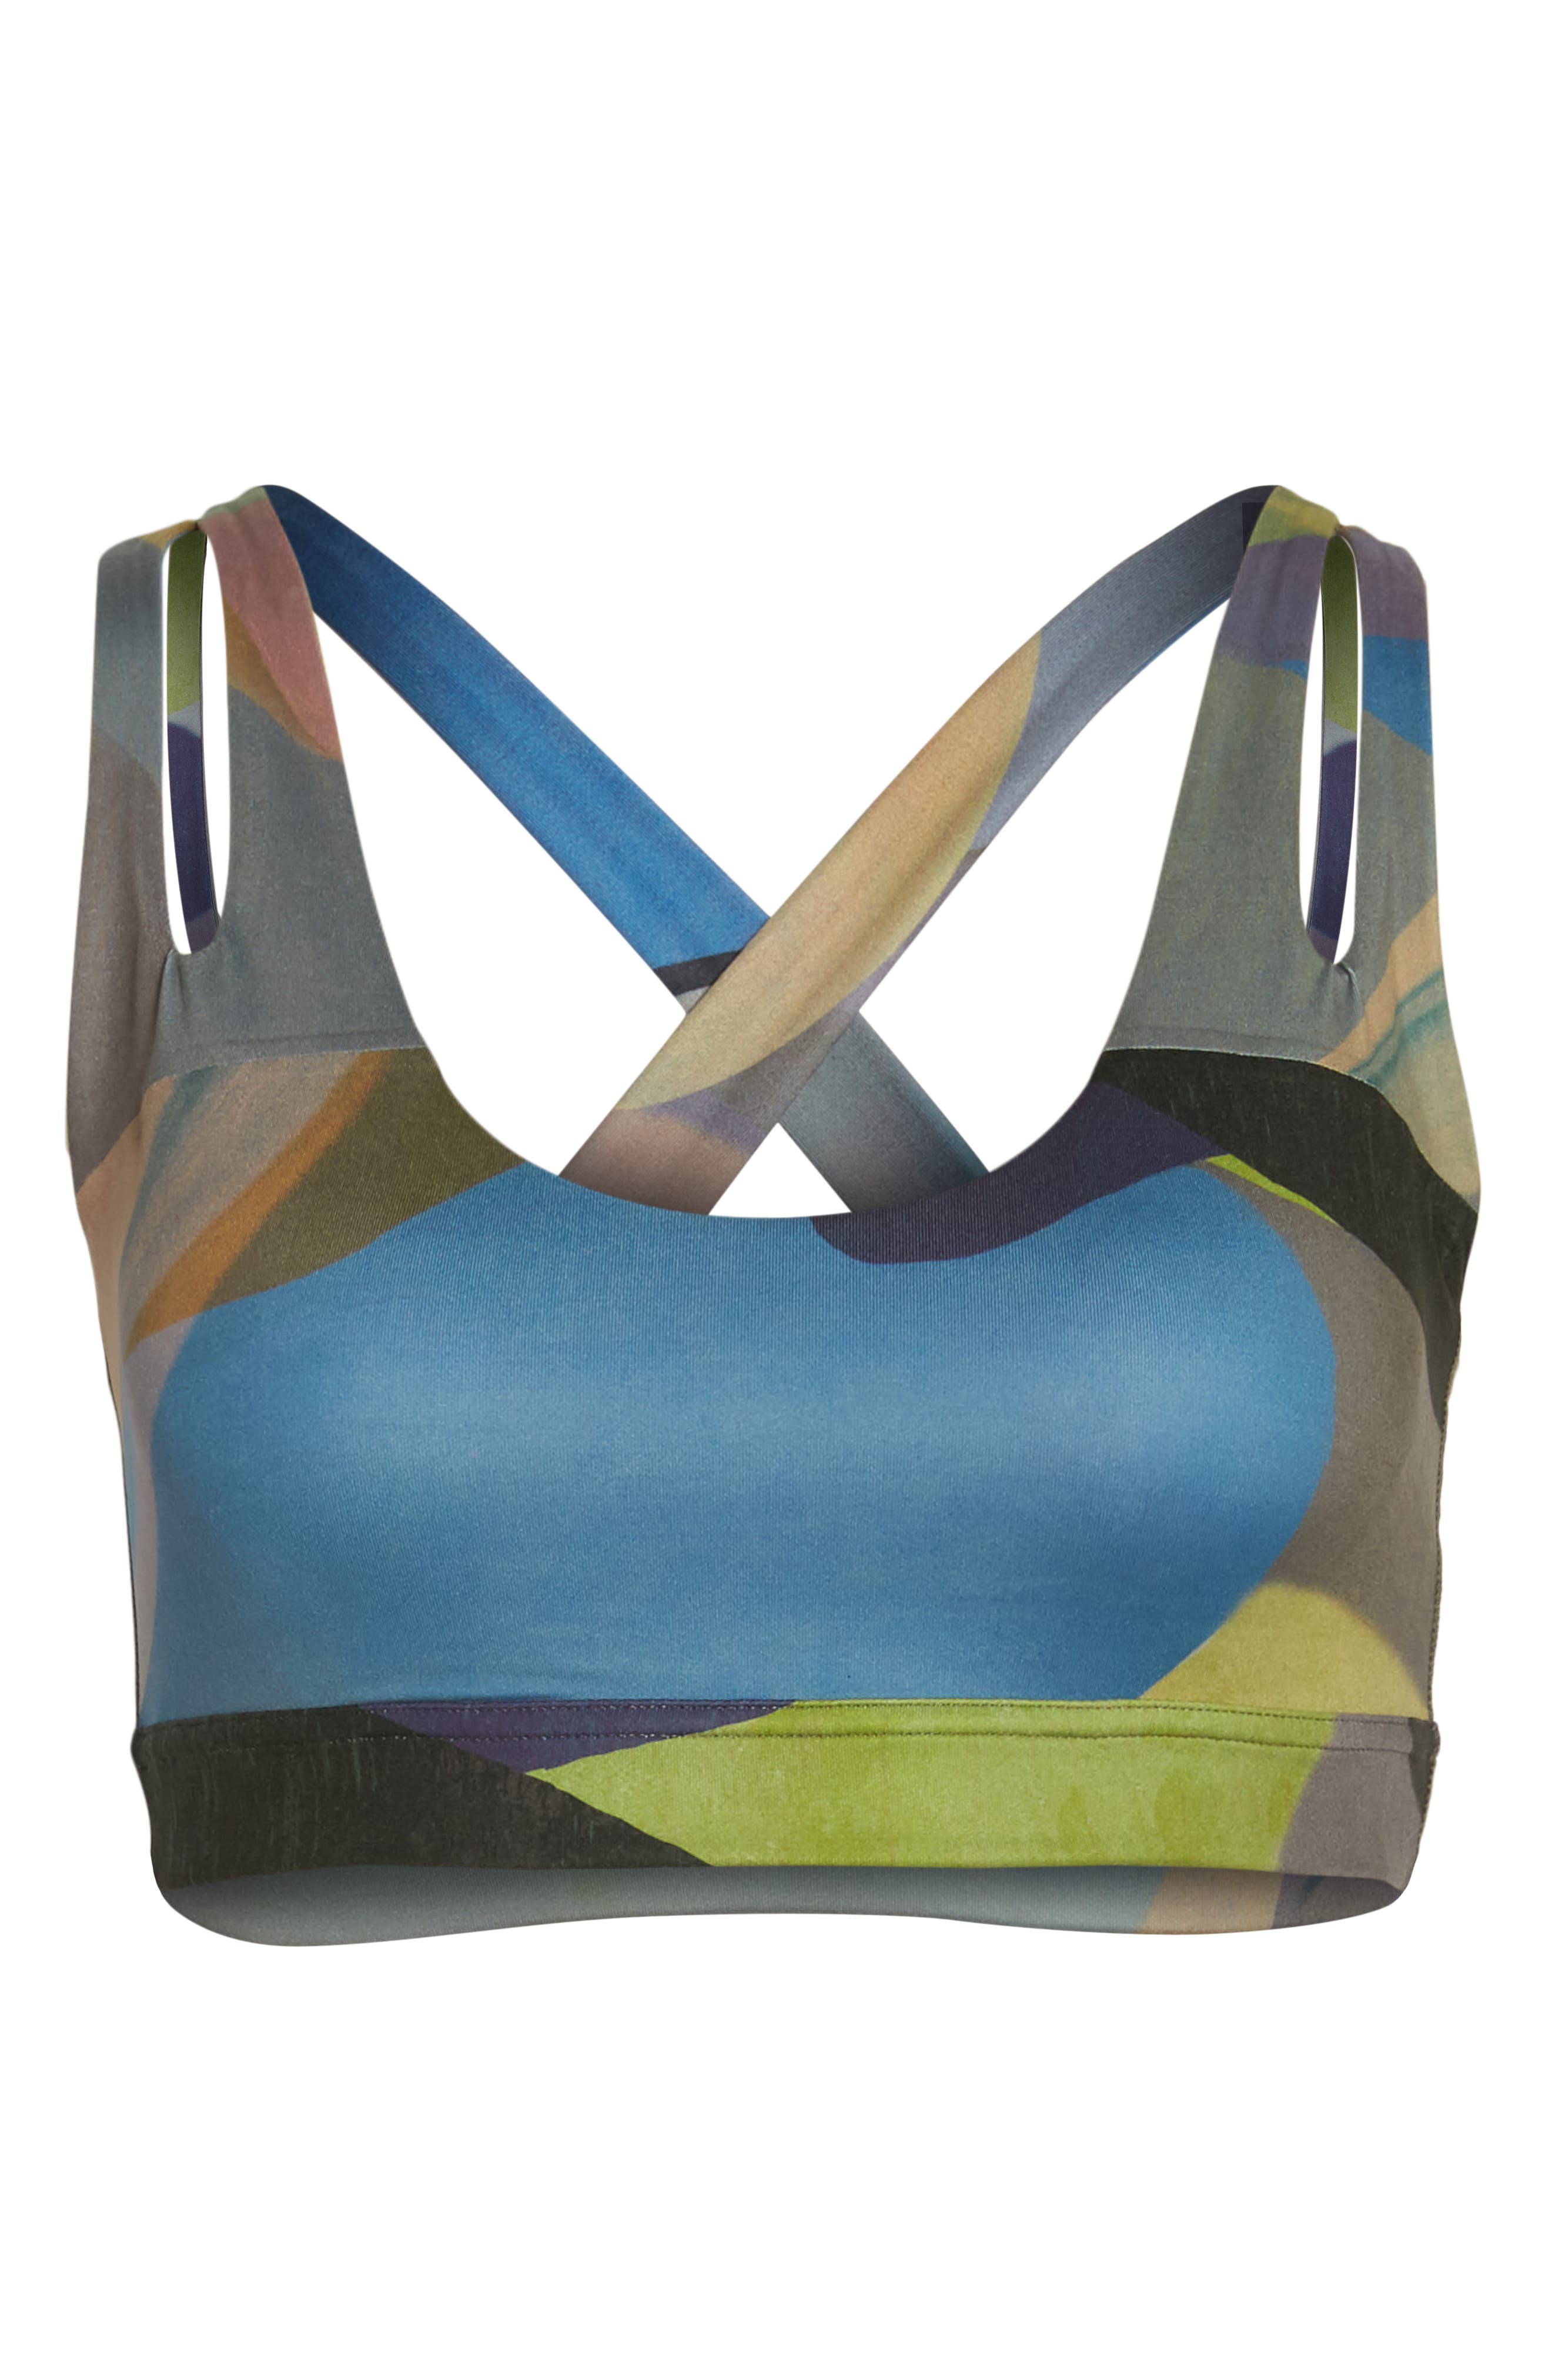 Lita Recycled Dual Strap Sports Bralette,                             Alternate thumbnail 6, color,                             GREY URBAN ABSTRACT BOTANICAL